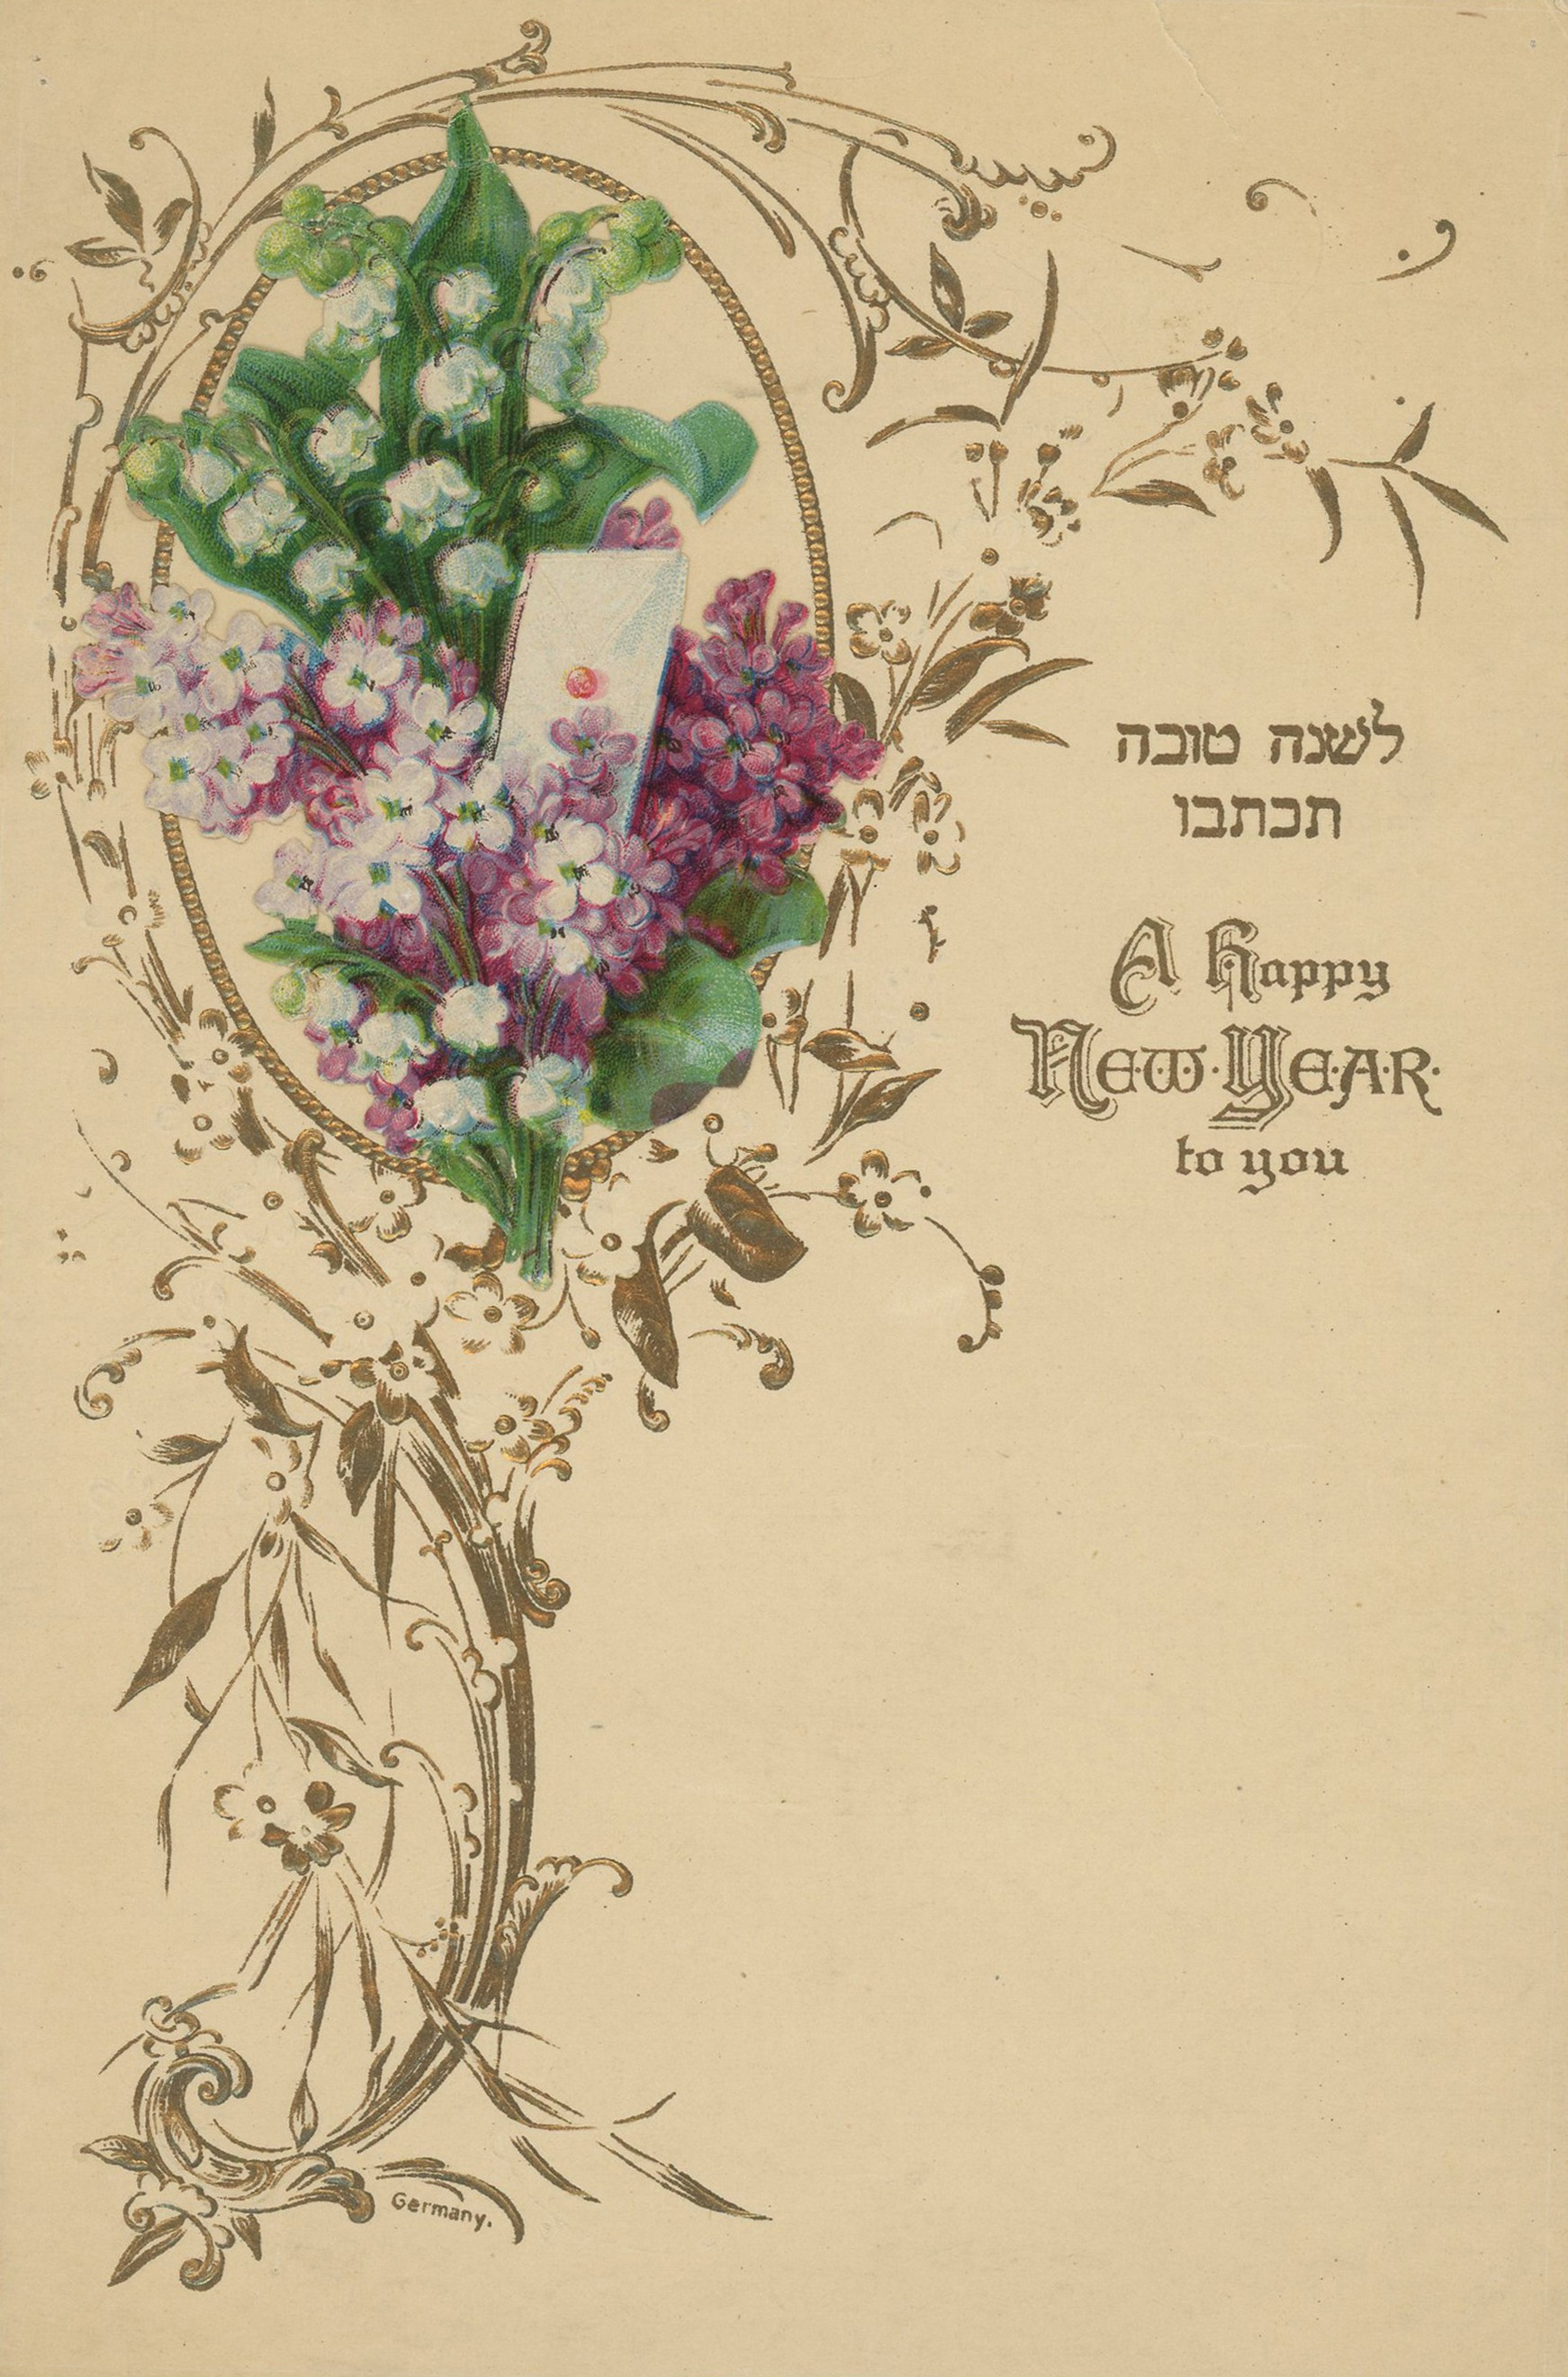 Shanah tovah greeting cards usa 1930s kedem auction ltd four shanah tovah greeting cards usa 1930s hebrew yiddish and english 13x125 cm to 215x14 cm good condition kristyandbryce Images